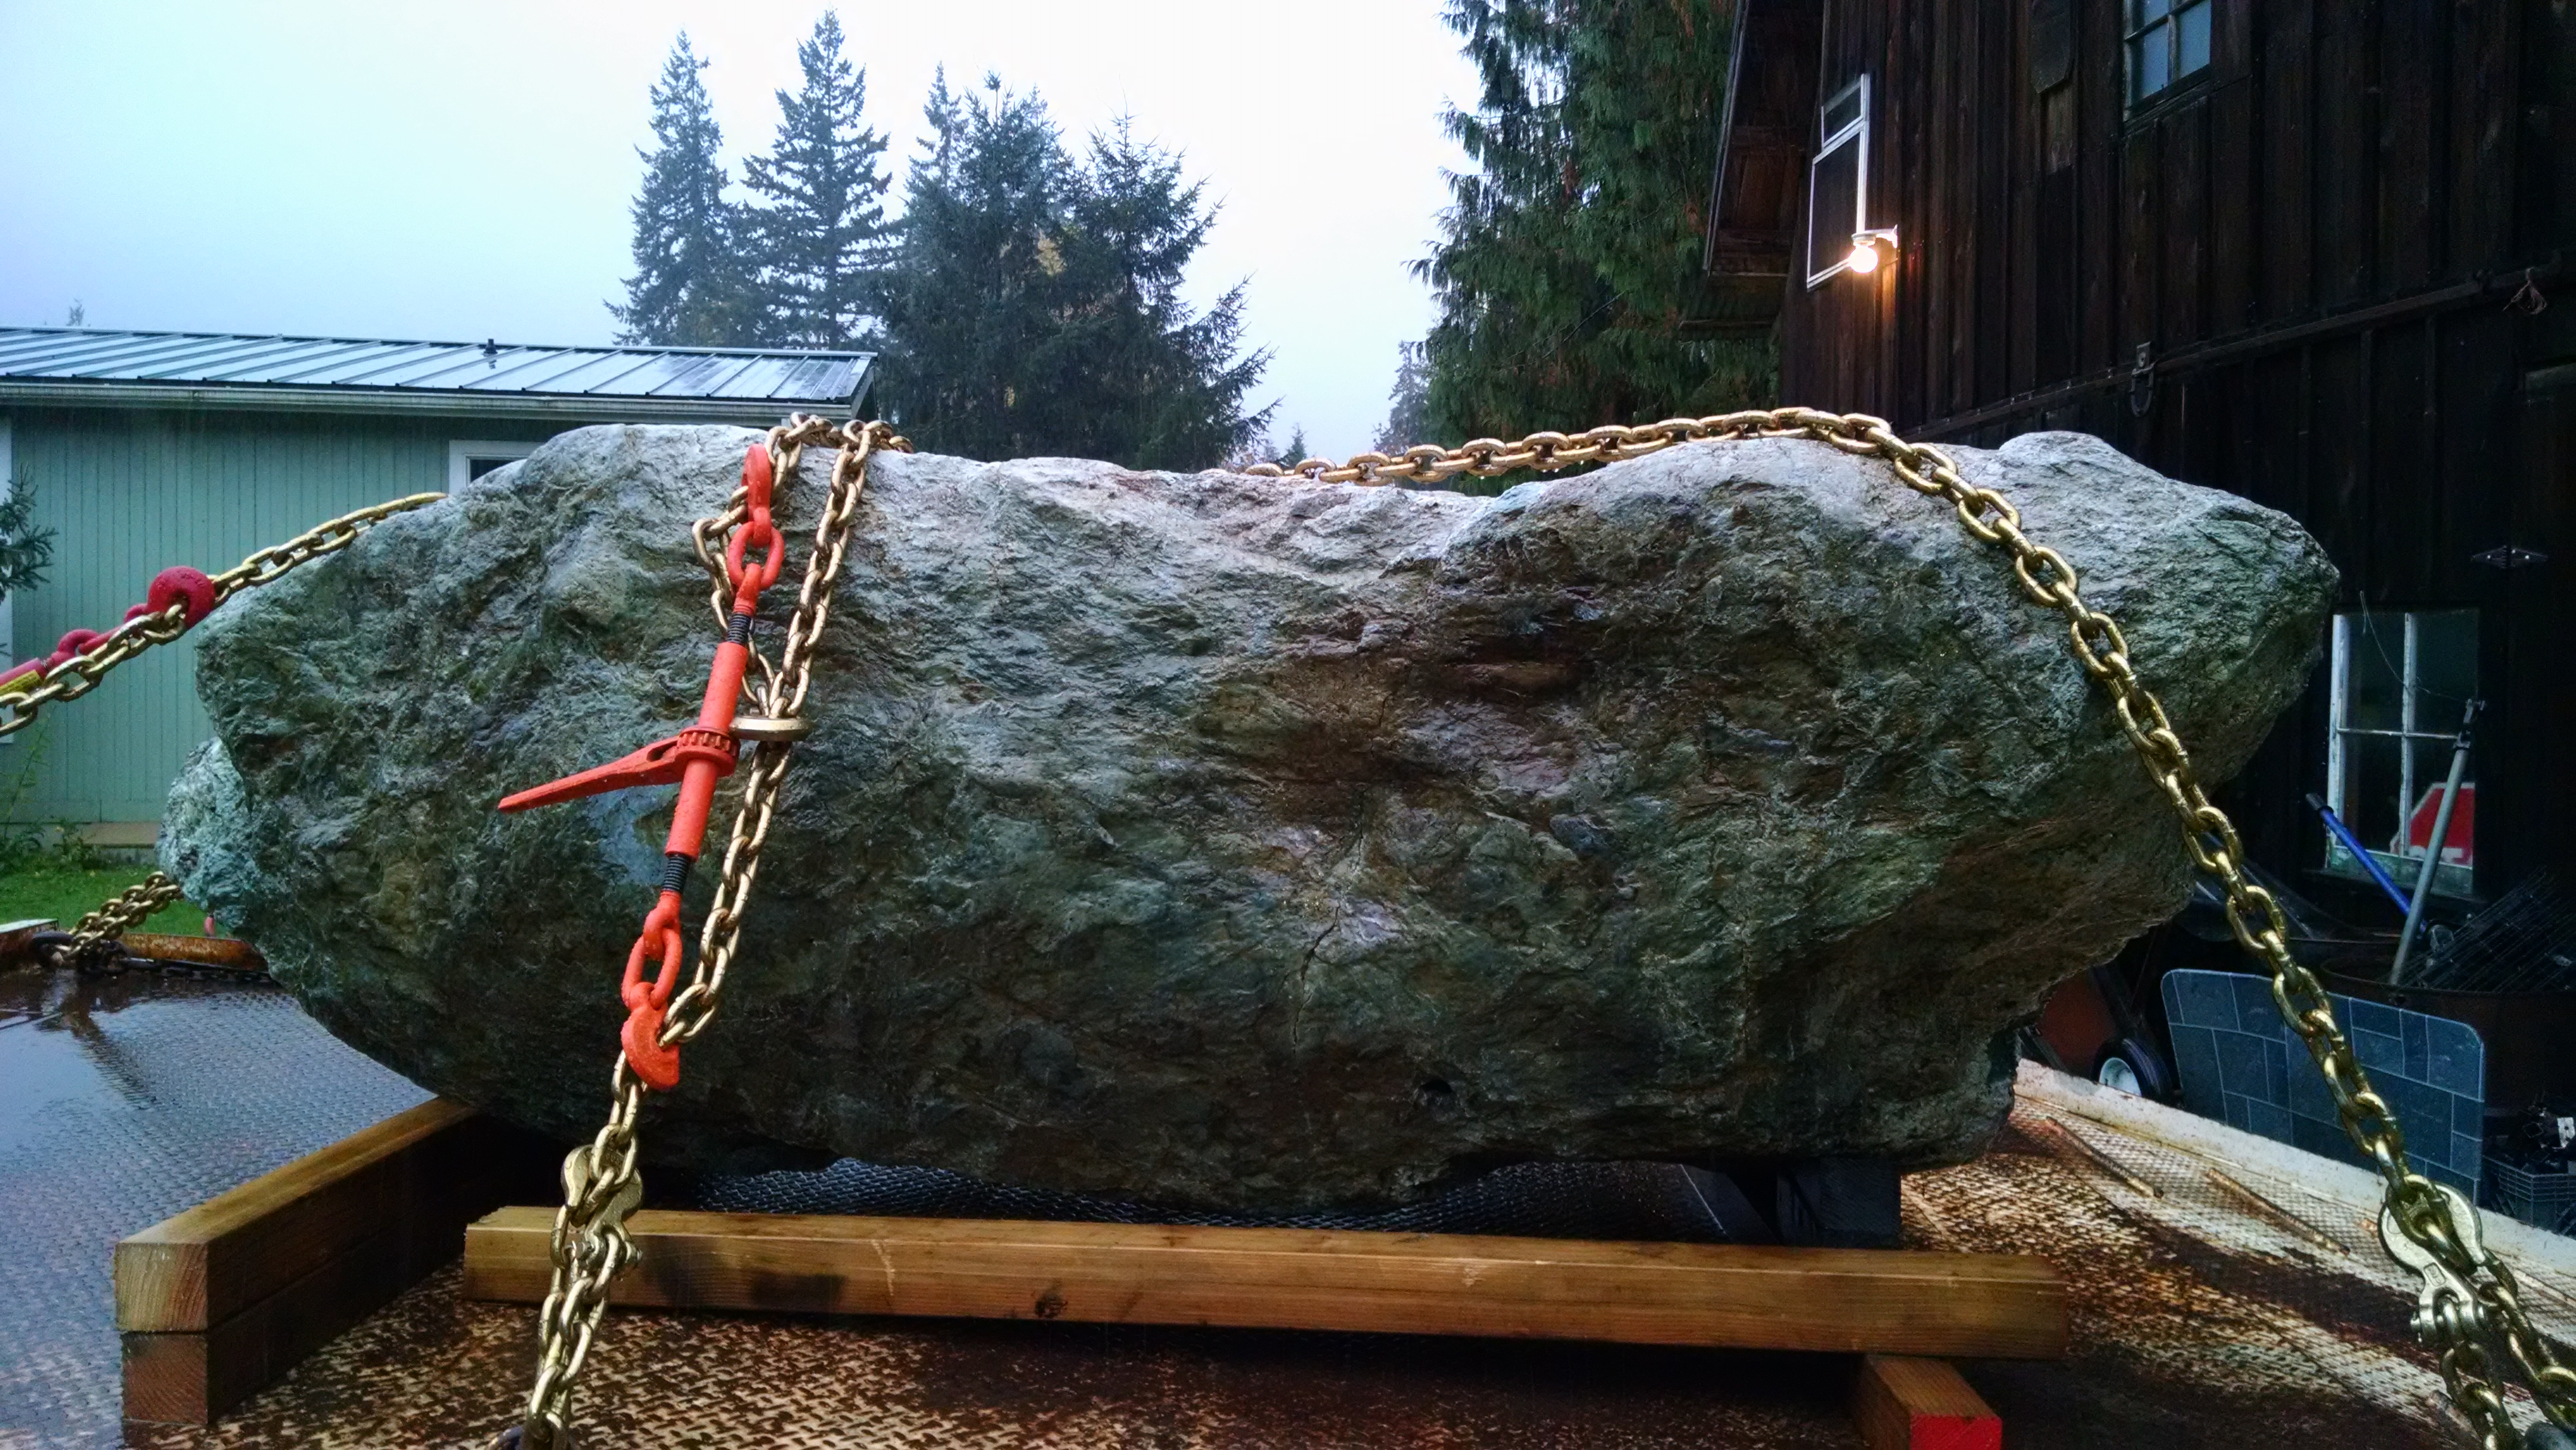 Amazing 16,000lb's Jade Boulder Found by Miners in USA